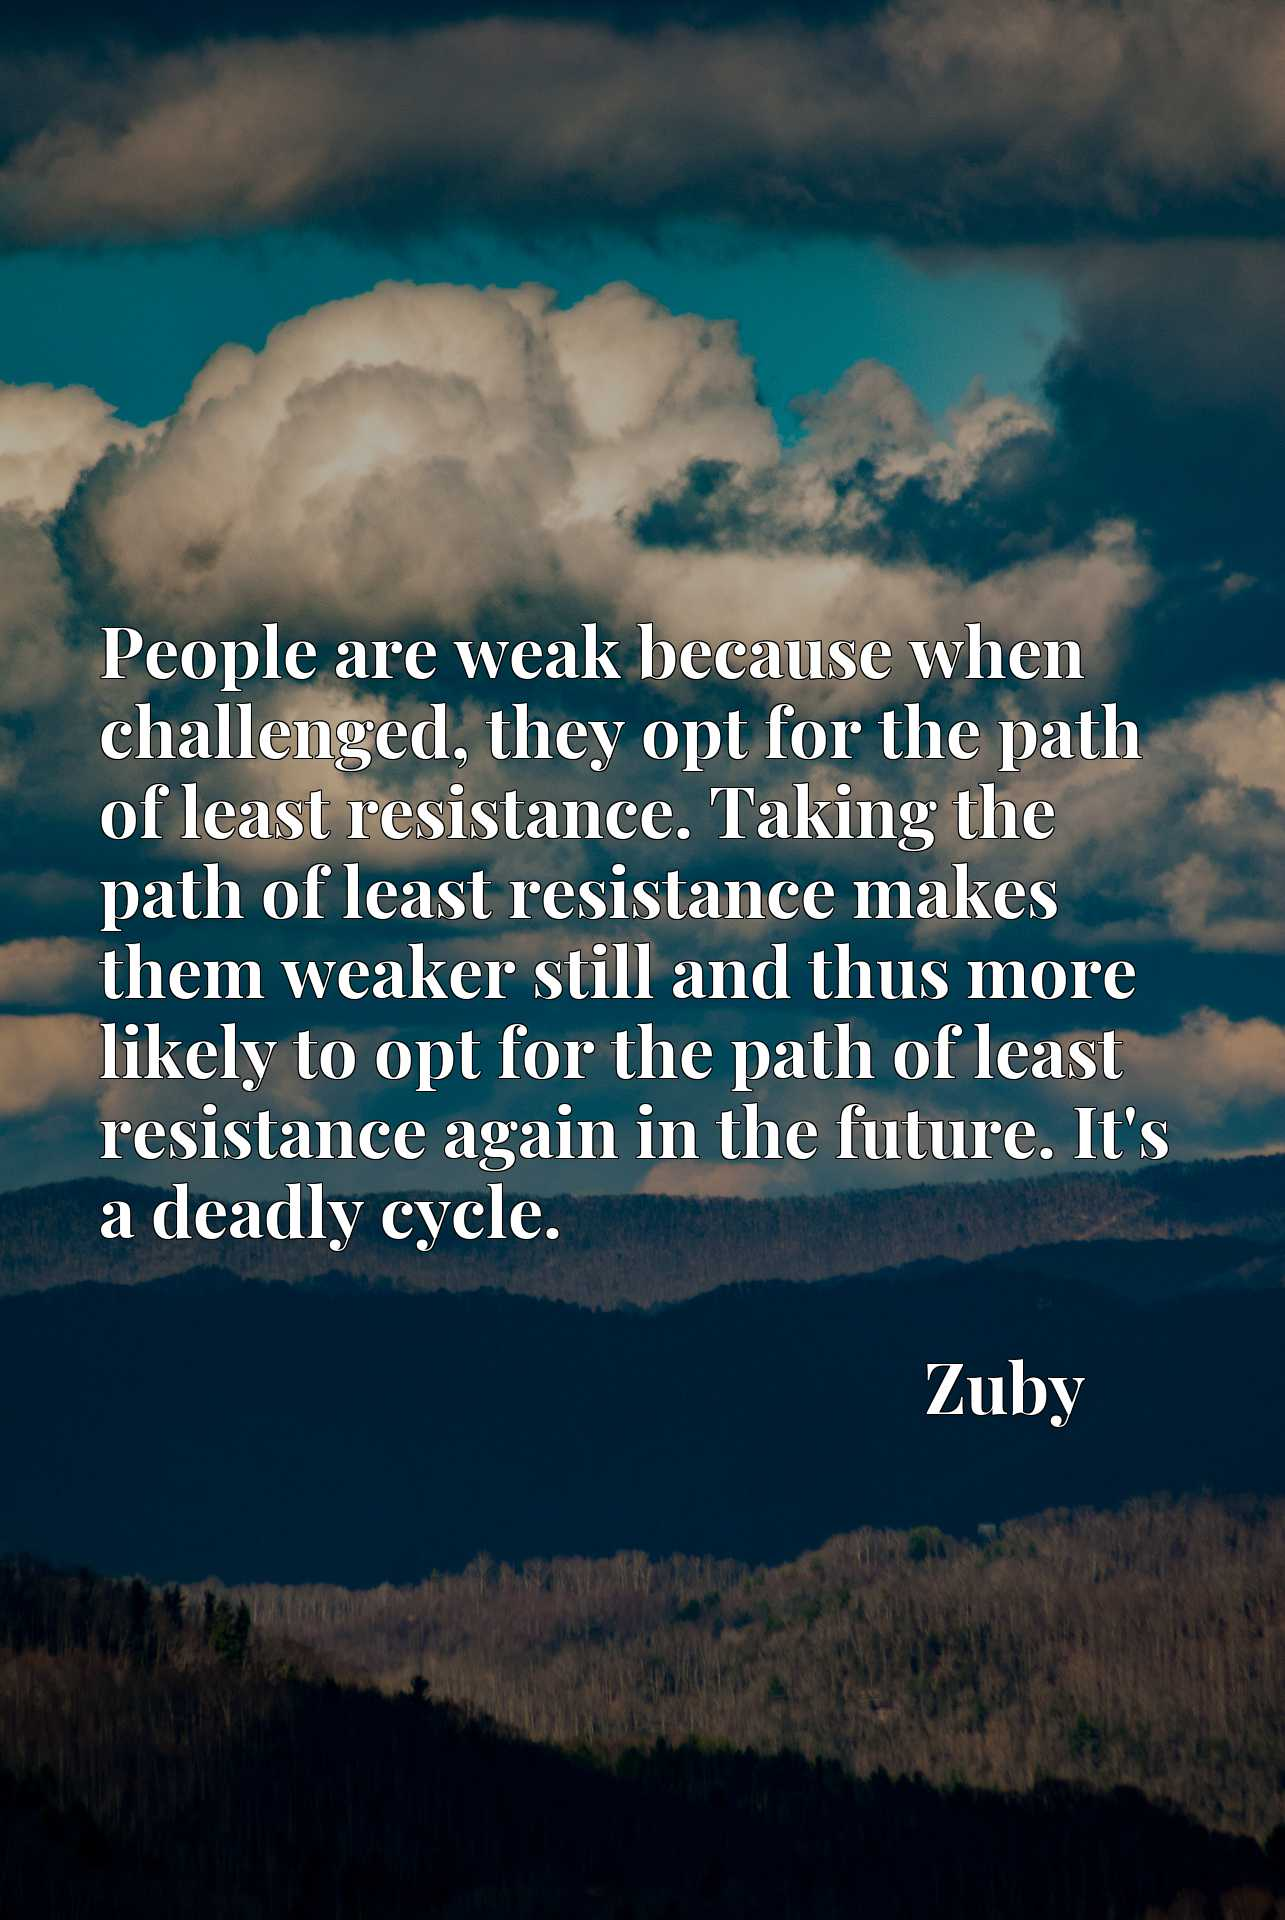 People are weak because when challenged, they opt for the path of least resistance. Taking the path of least resistance makes them weaker still and thus more likely to opt for the path of least resistance again in the future. It's a deadly cycle.